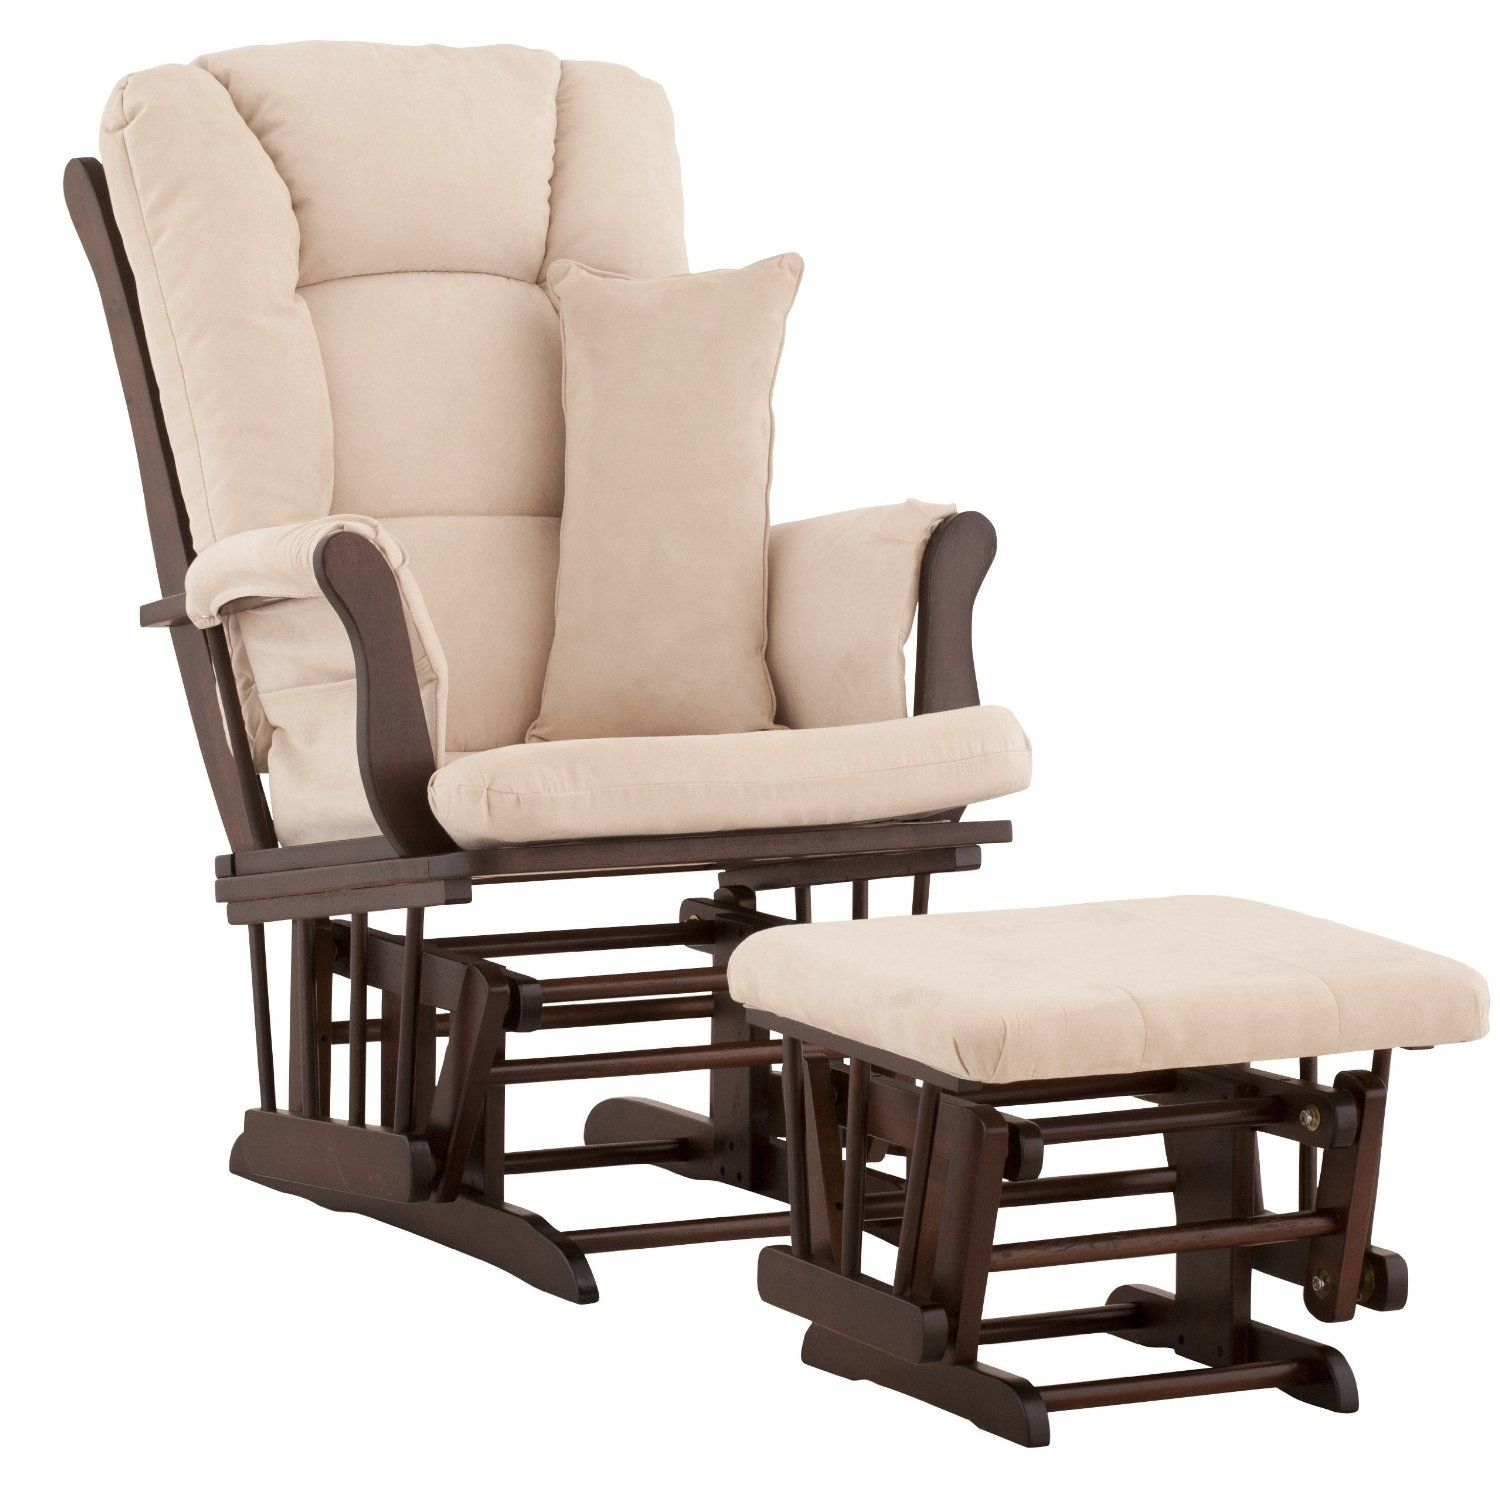 Rocking Chairs Glider With Ottoman